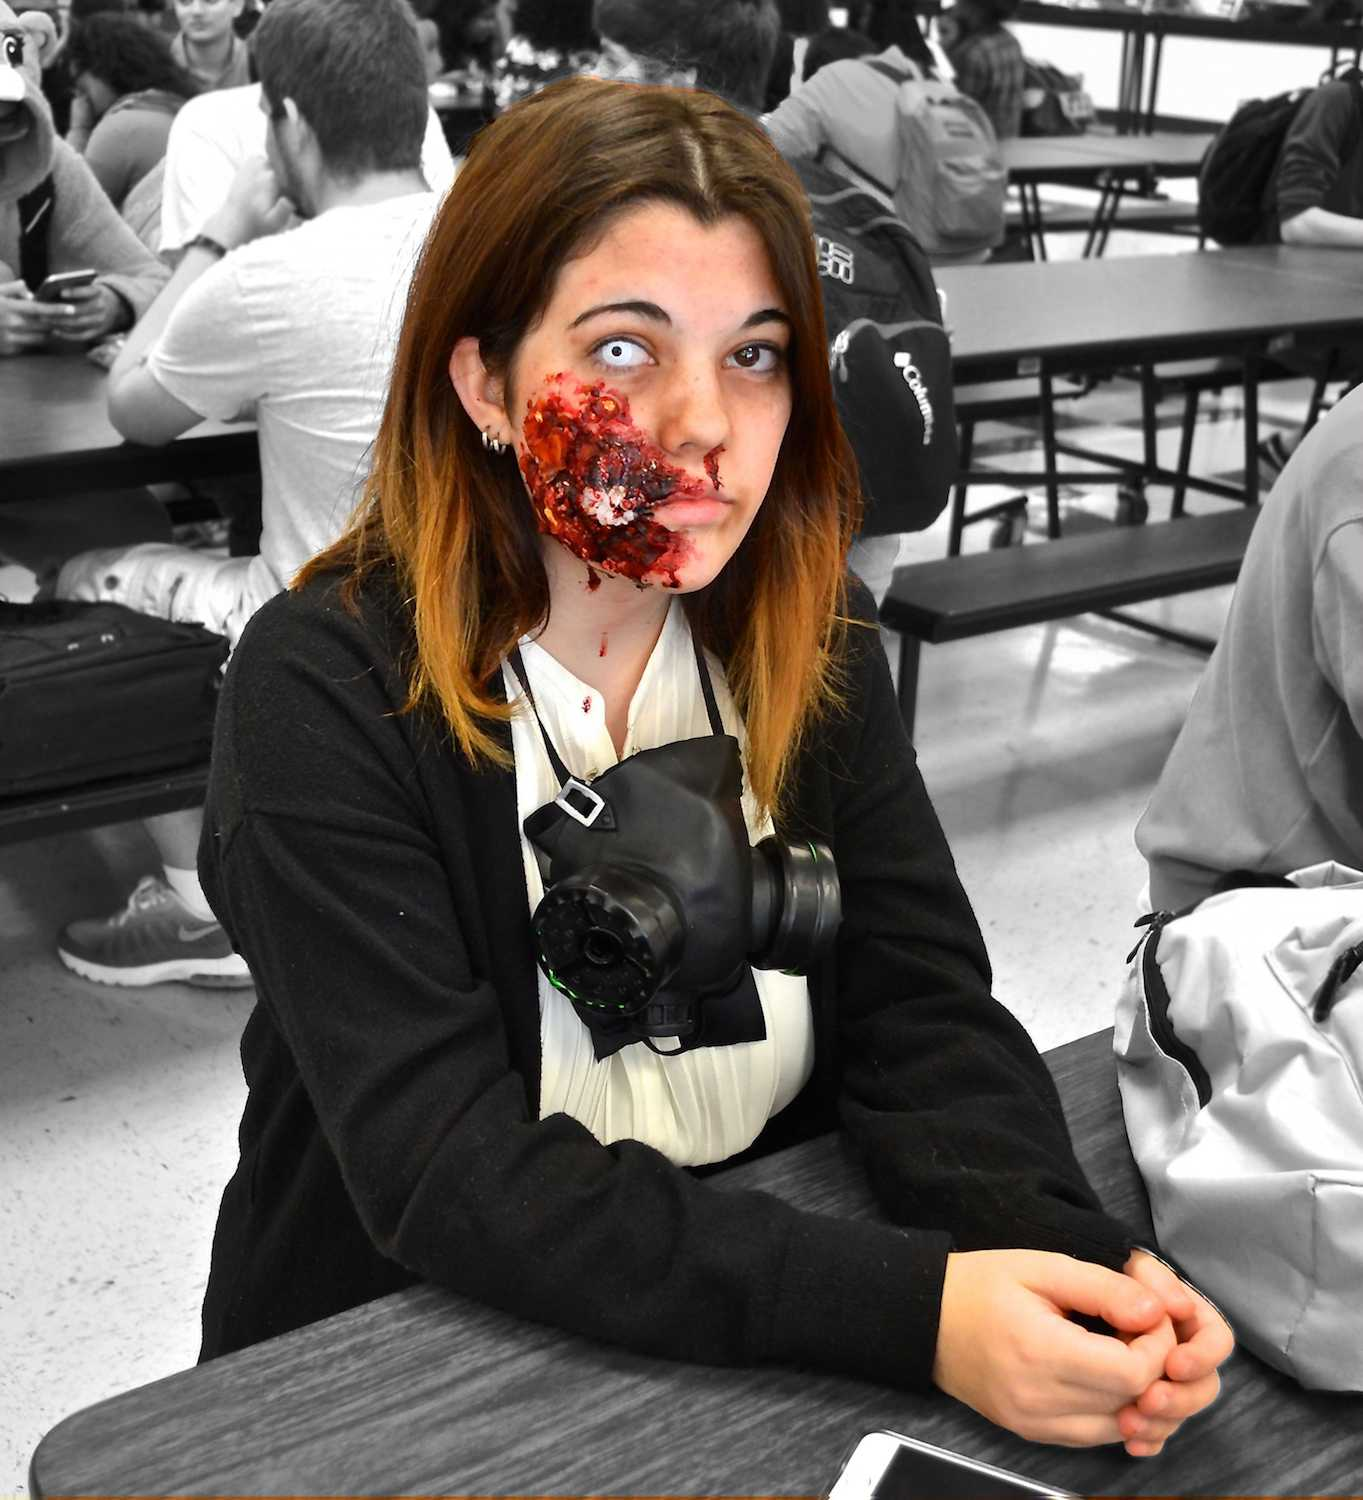 "Wearing a scare-worthy costume, junior Grace Hannah woke up at 4 a.m. to perfect her zombie makeup. NC allows students to dress up in their spookiest trick-or treating attire. On her favorite holiday, Hannah says she's ready to ""walk around and scare children tonight."""